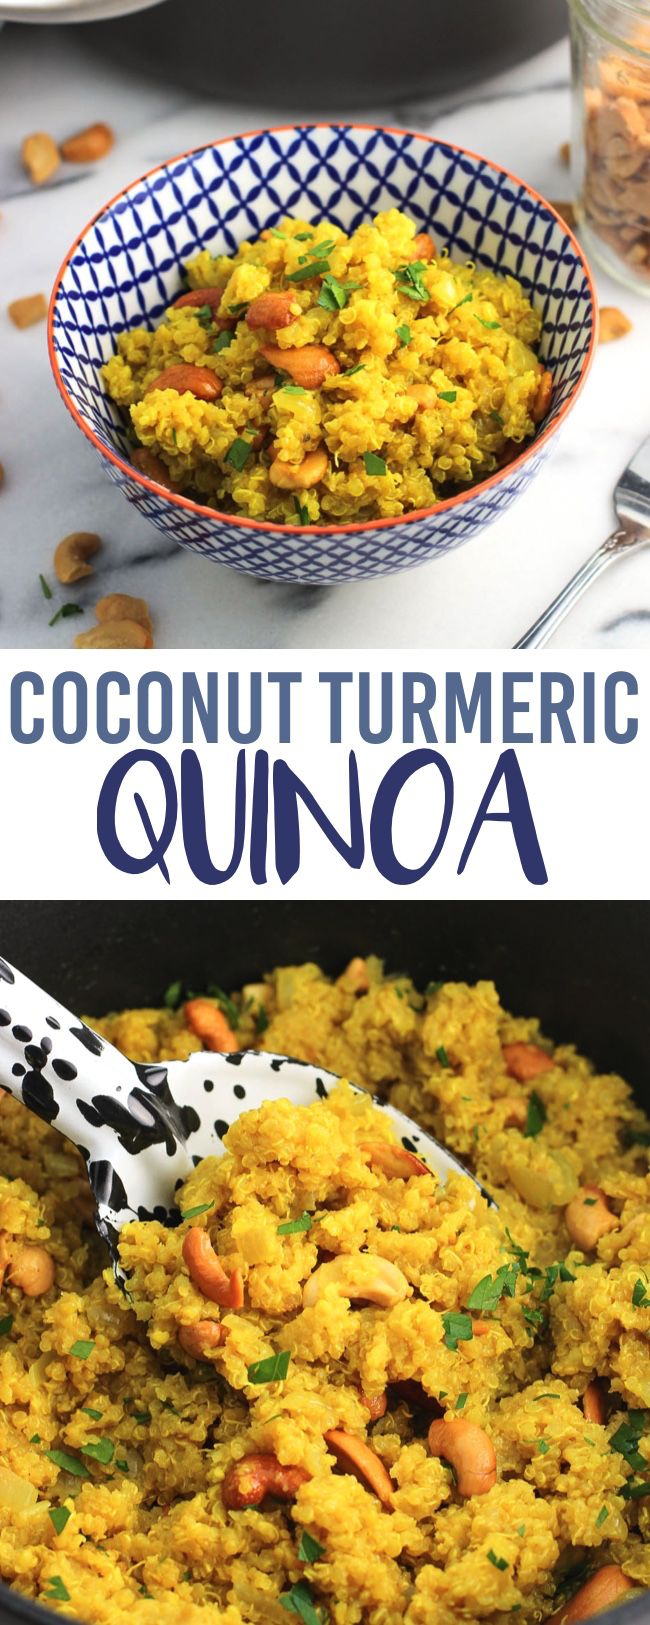 Photo of Coconut turmeric quinoa is a flavorful and healthy side dish recipe, made with c…